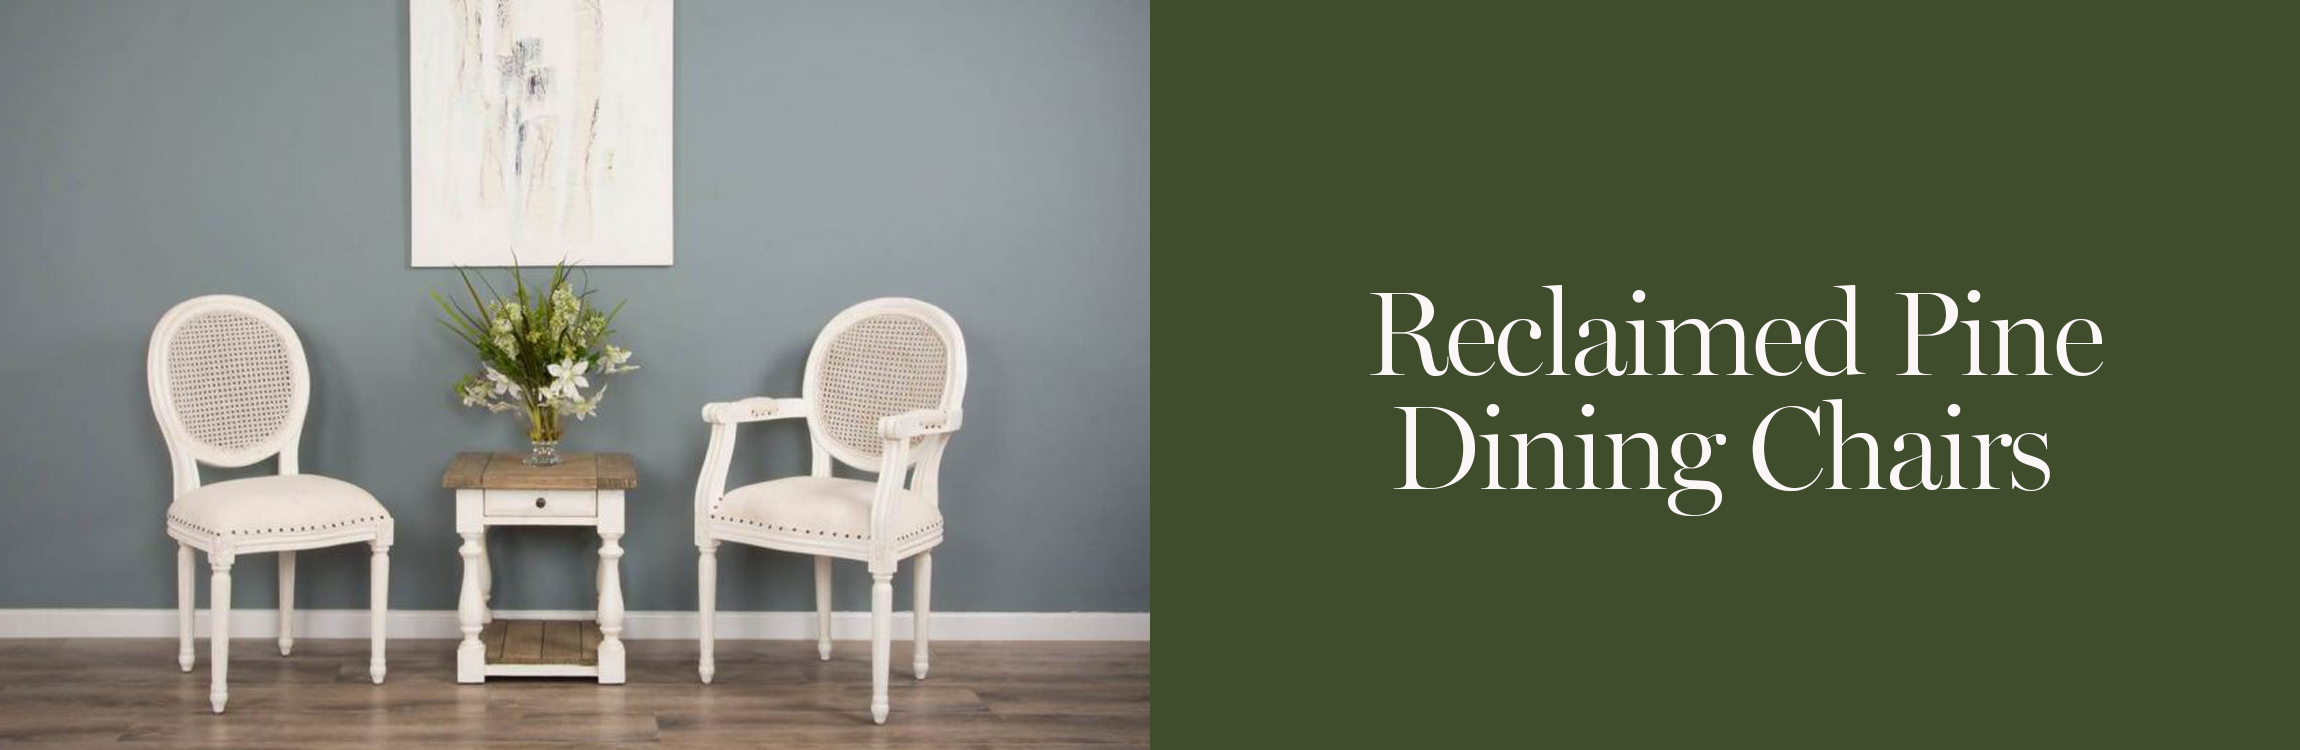 Reclaimed Pine Dining Chairs